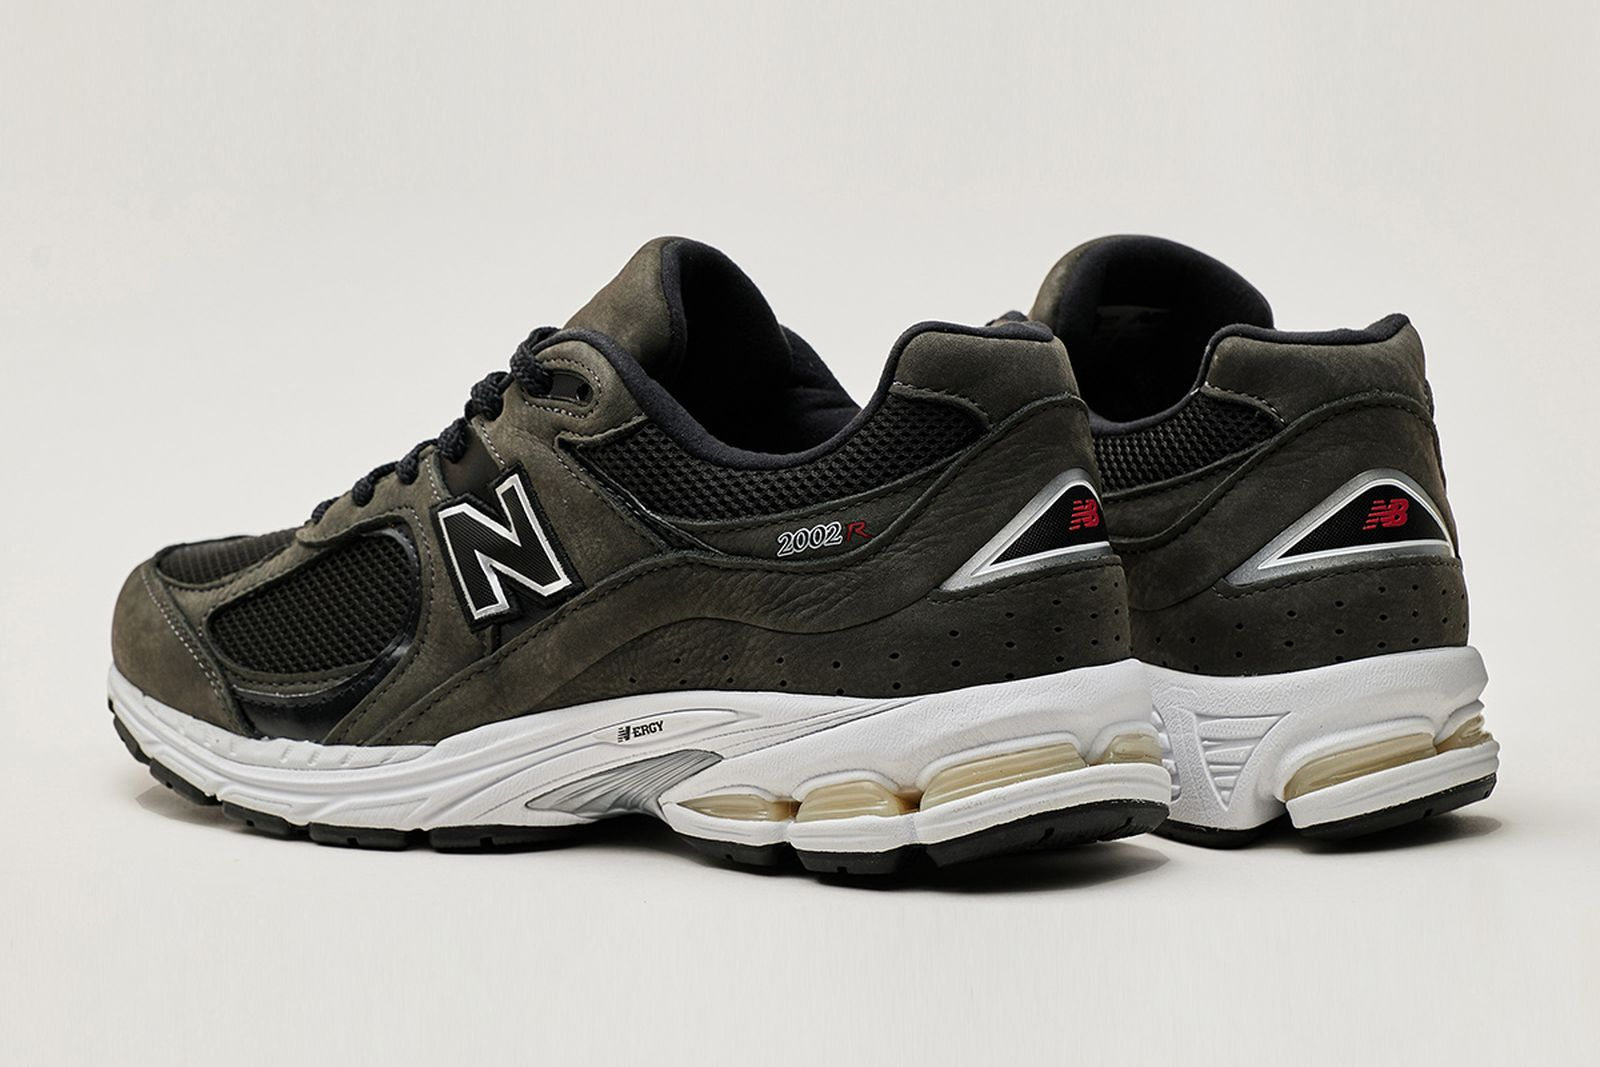 new-balance-2002r-release-date-price-03